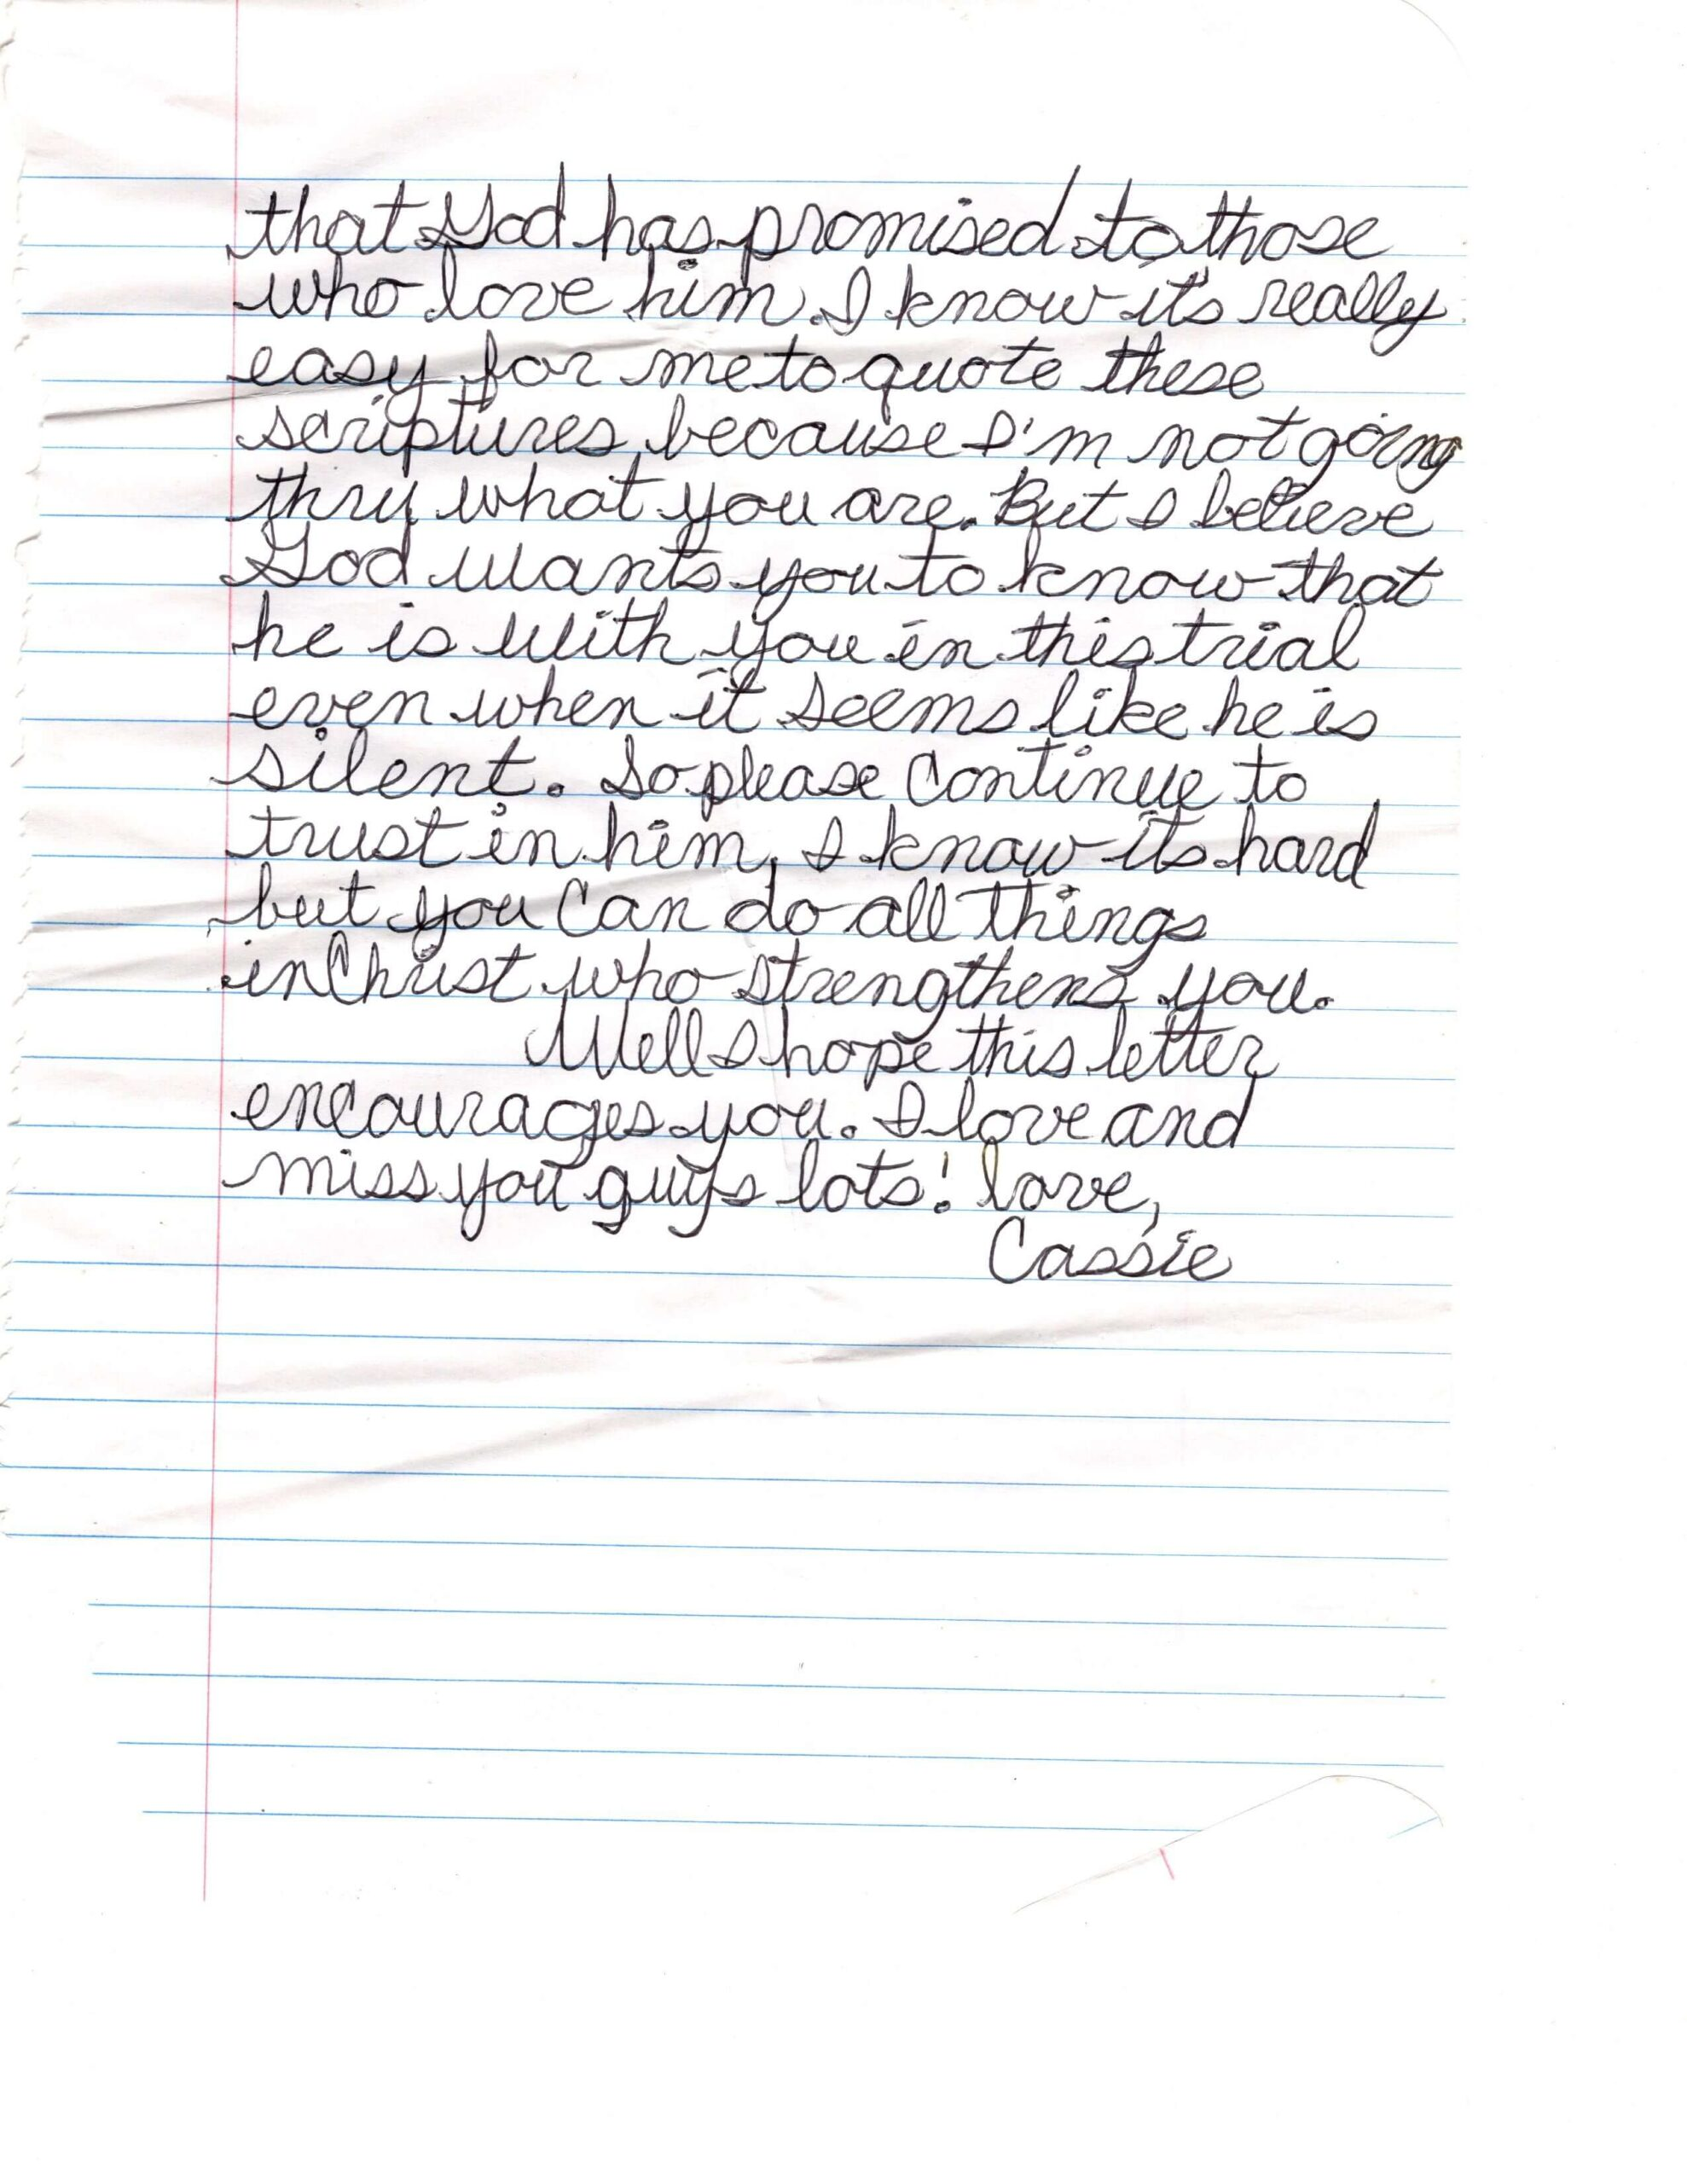 letter from cassie page three